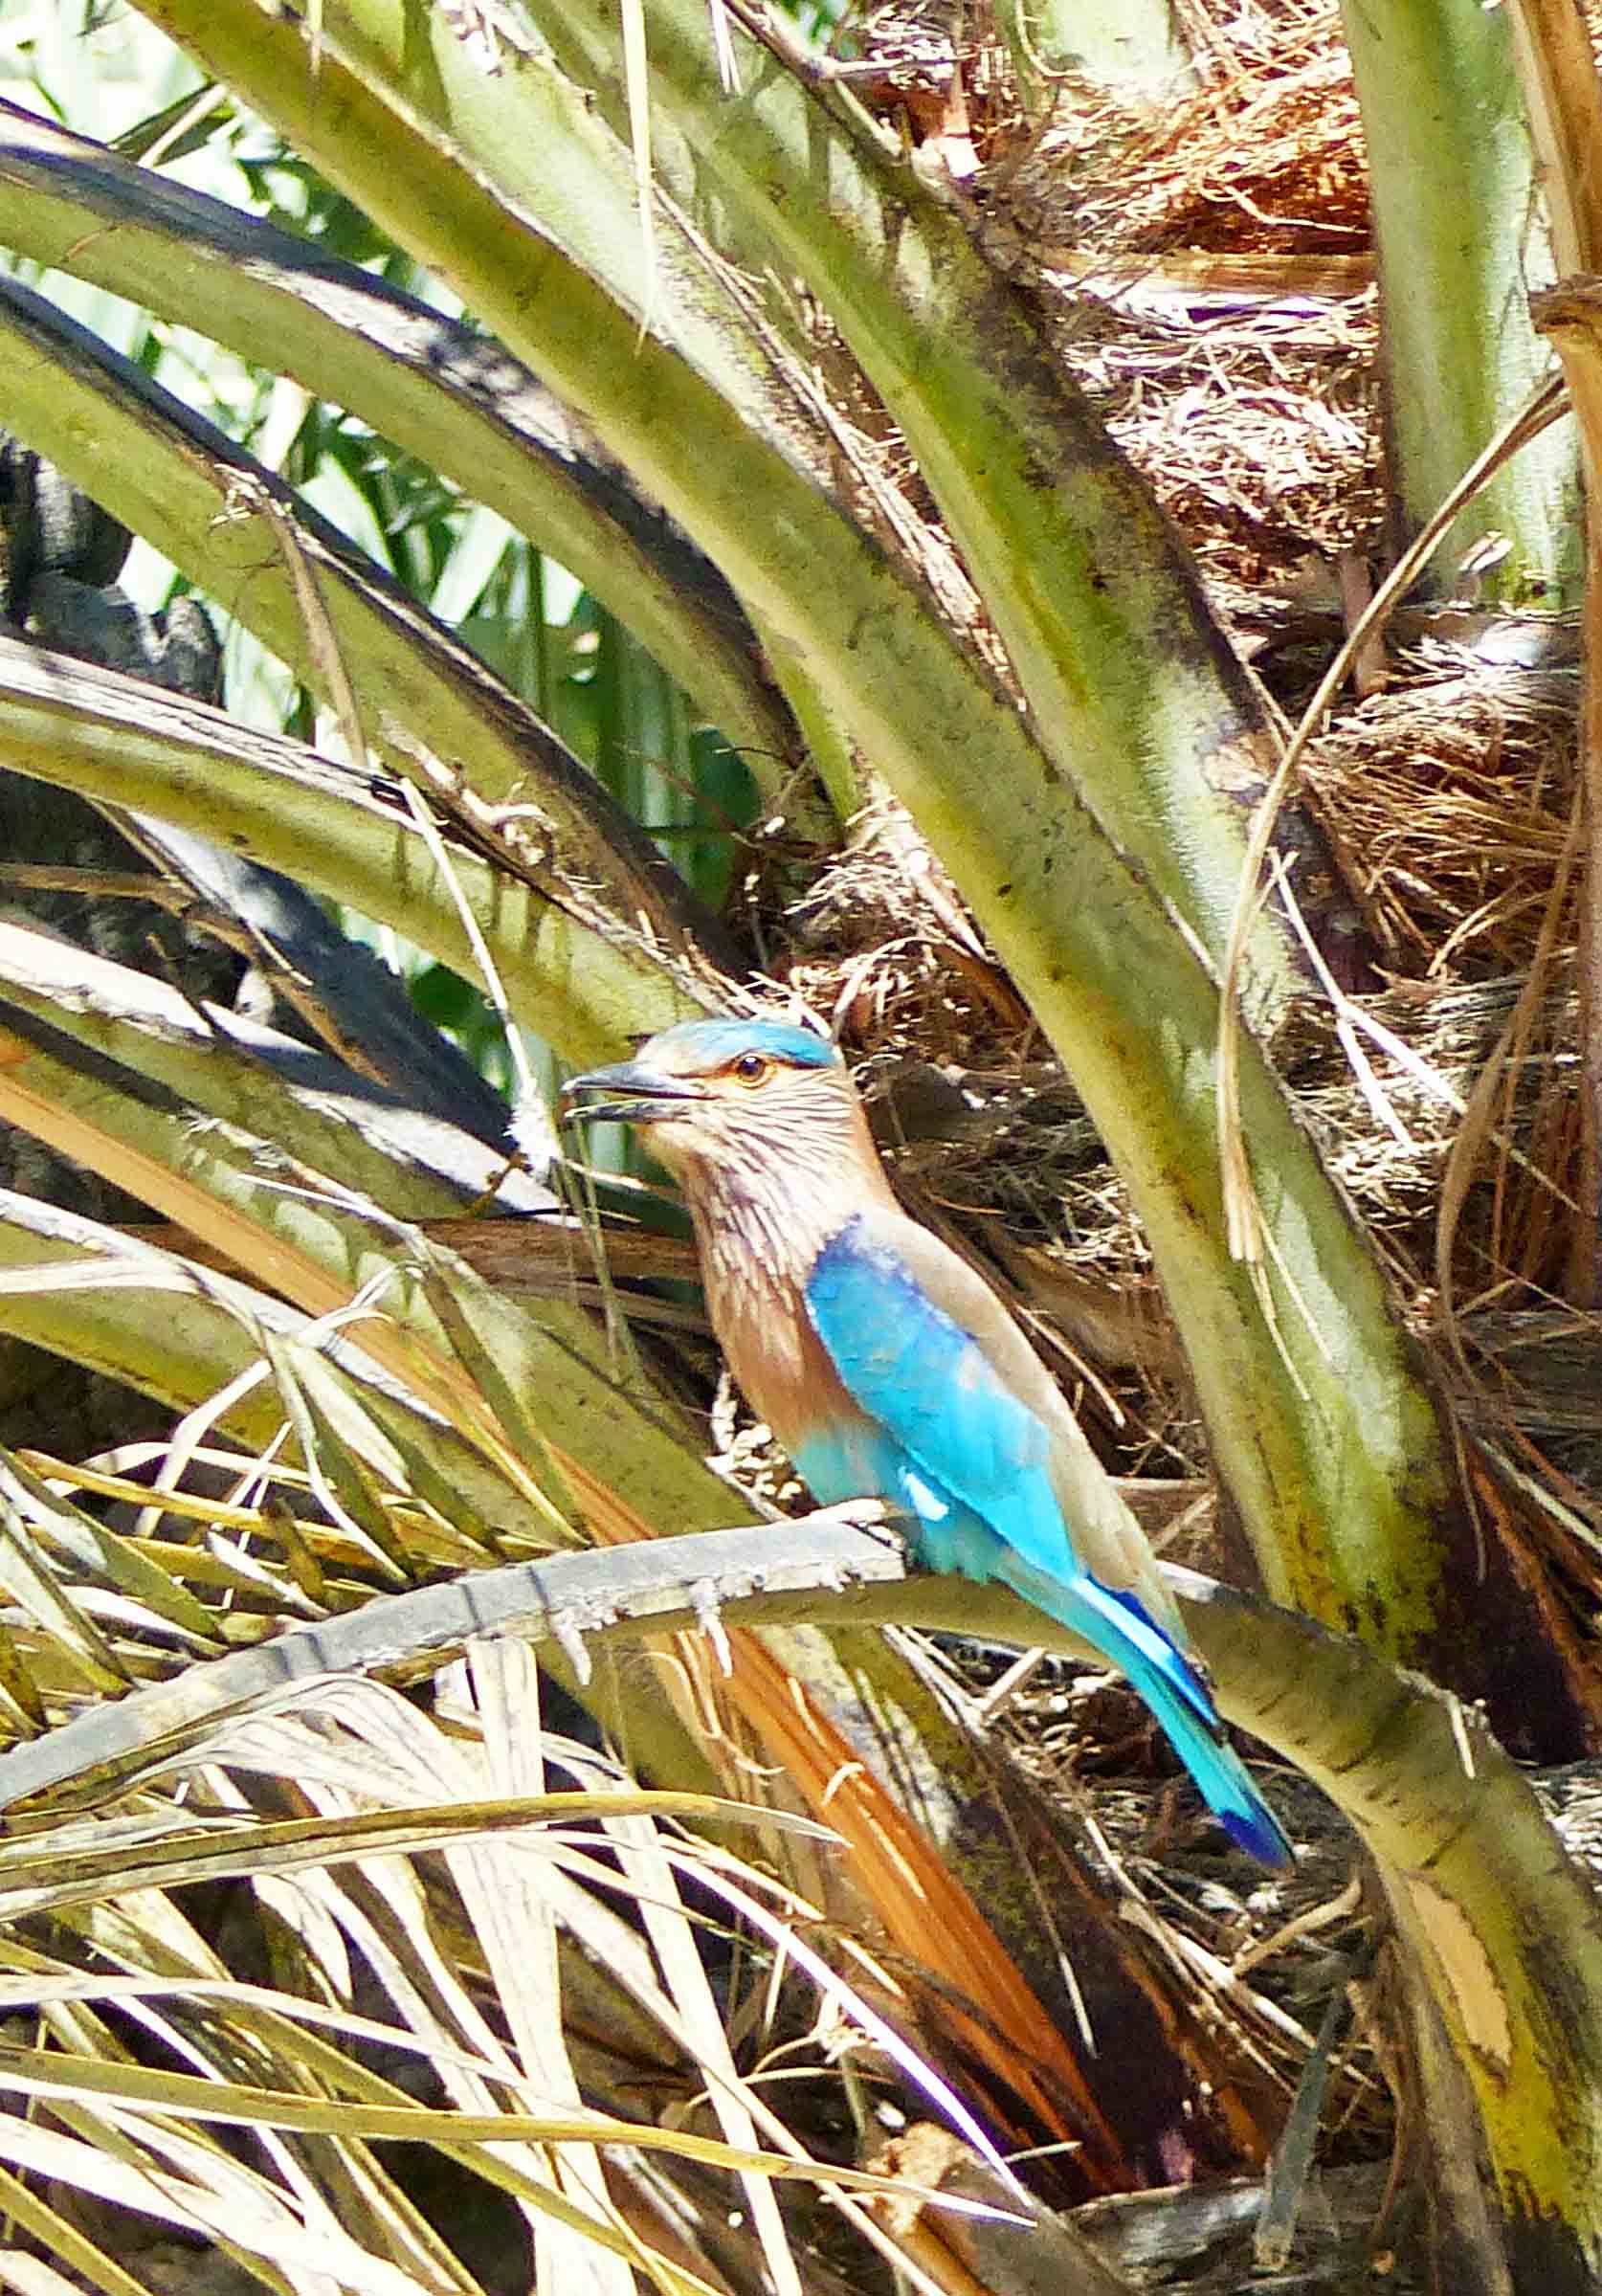 Beige and turquoise bird in a palm tree